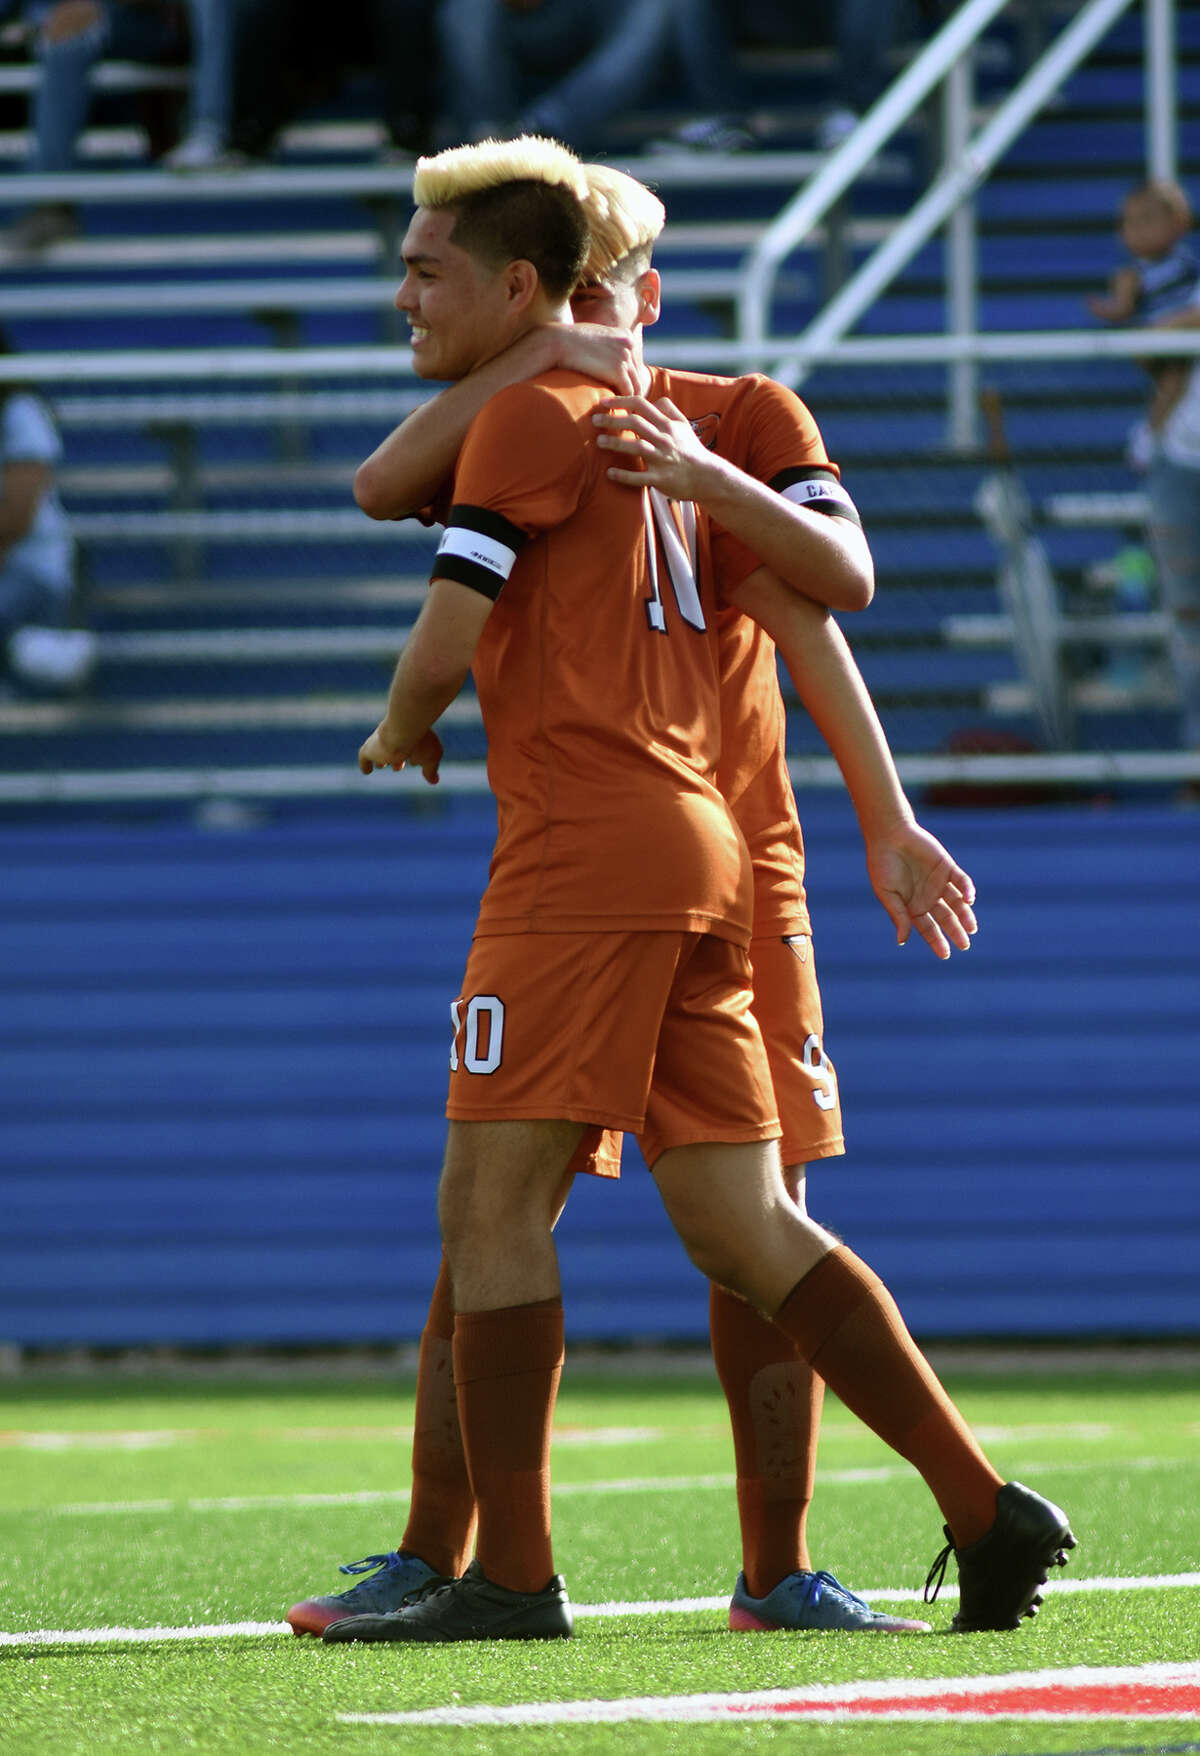 Dobie senior midfielder Edwin Saldivar, left, gets a hug from fellow team captain and senior forward Sabino Lozano after Saldivar converted on a penalty kick for a Longhorn goal against Arlington Houston early in the first period of their Class 6A Boys semifinal matchup at the 2017 UIL Soccer State Championships at Birkelbach Field in Georgetown on April 14, 2017. (Photo by Jerry Baker/Freelance)